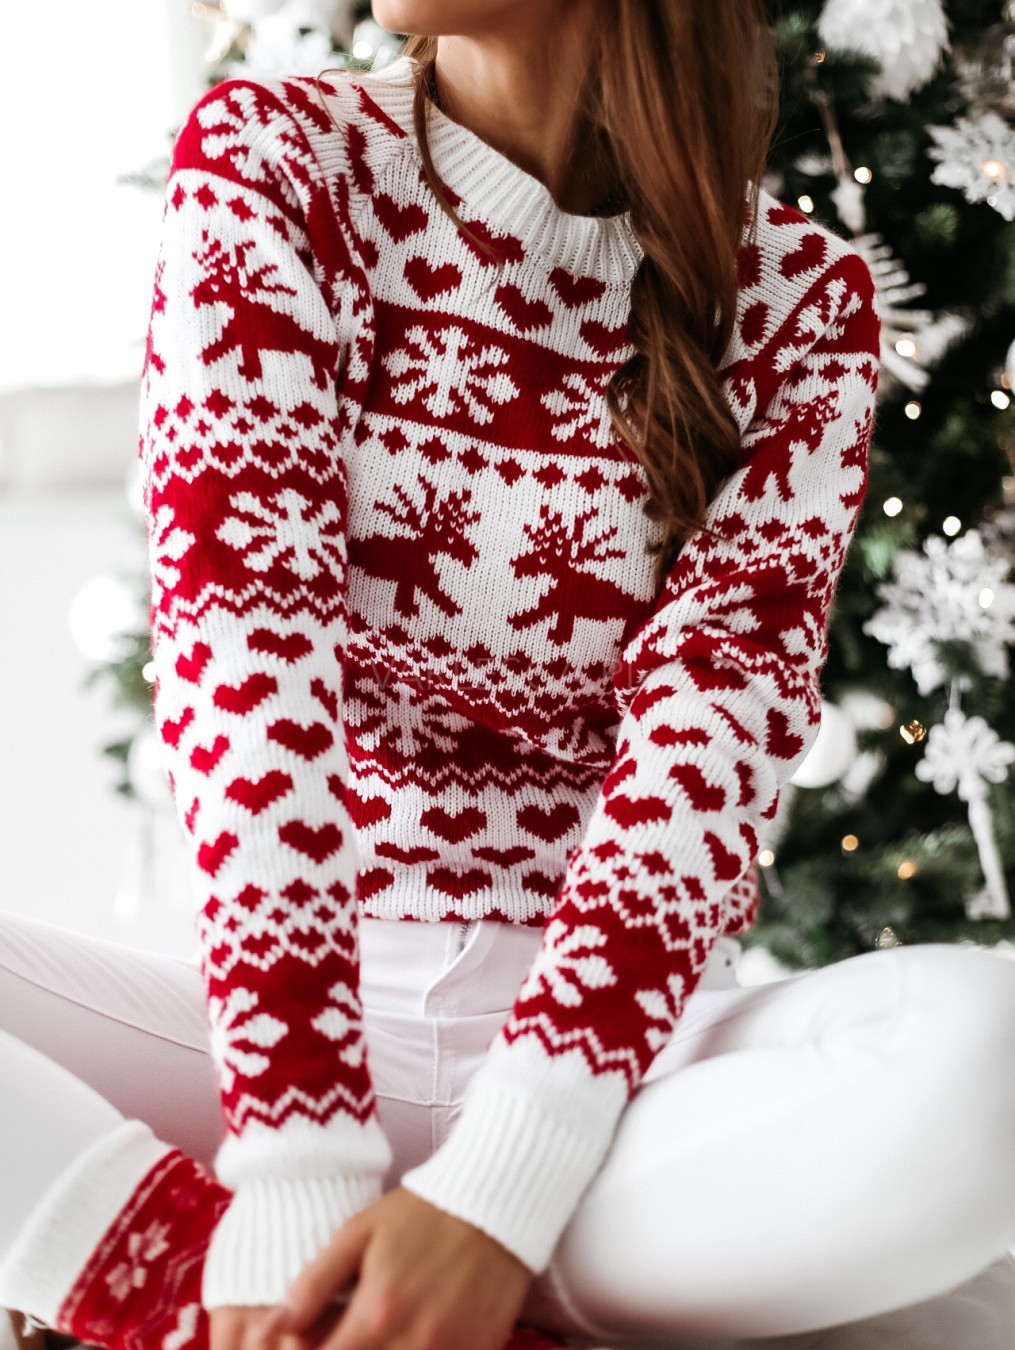 Fhuuly Christmas New Jumper Womens Long Sleeve O-Neck Christmas Hat and Cat Print Pullover T-Shirts Xmas Cap Casual Cute Sweatshirt Blouse for Teen Girls